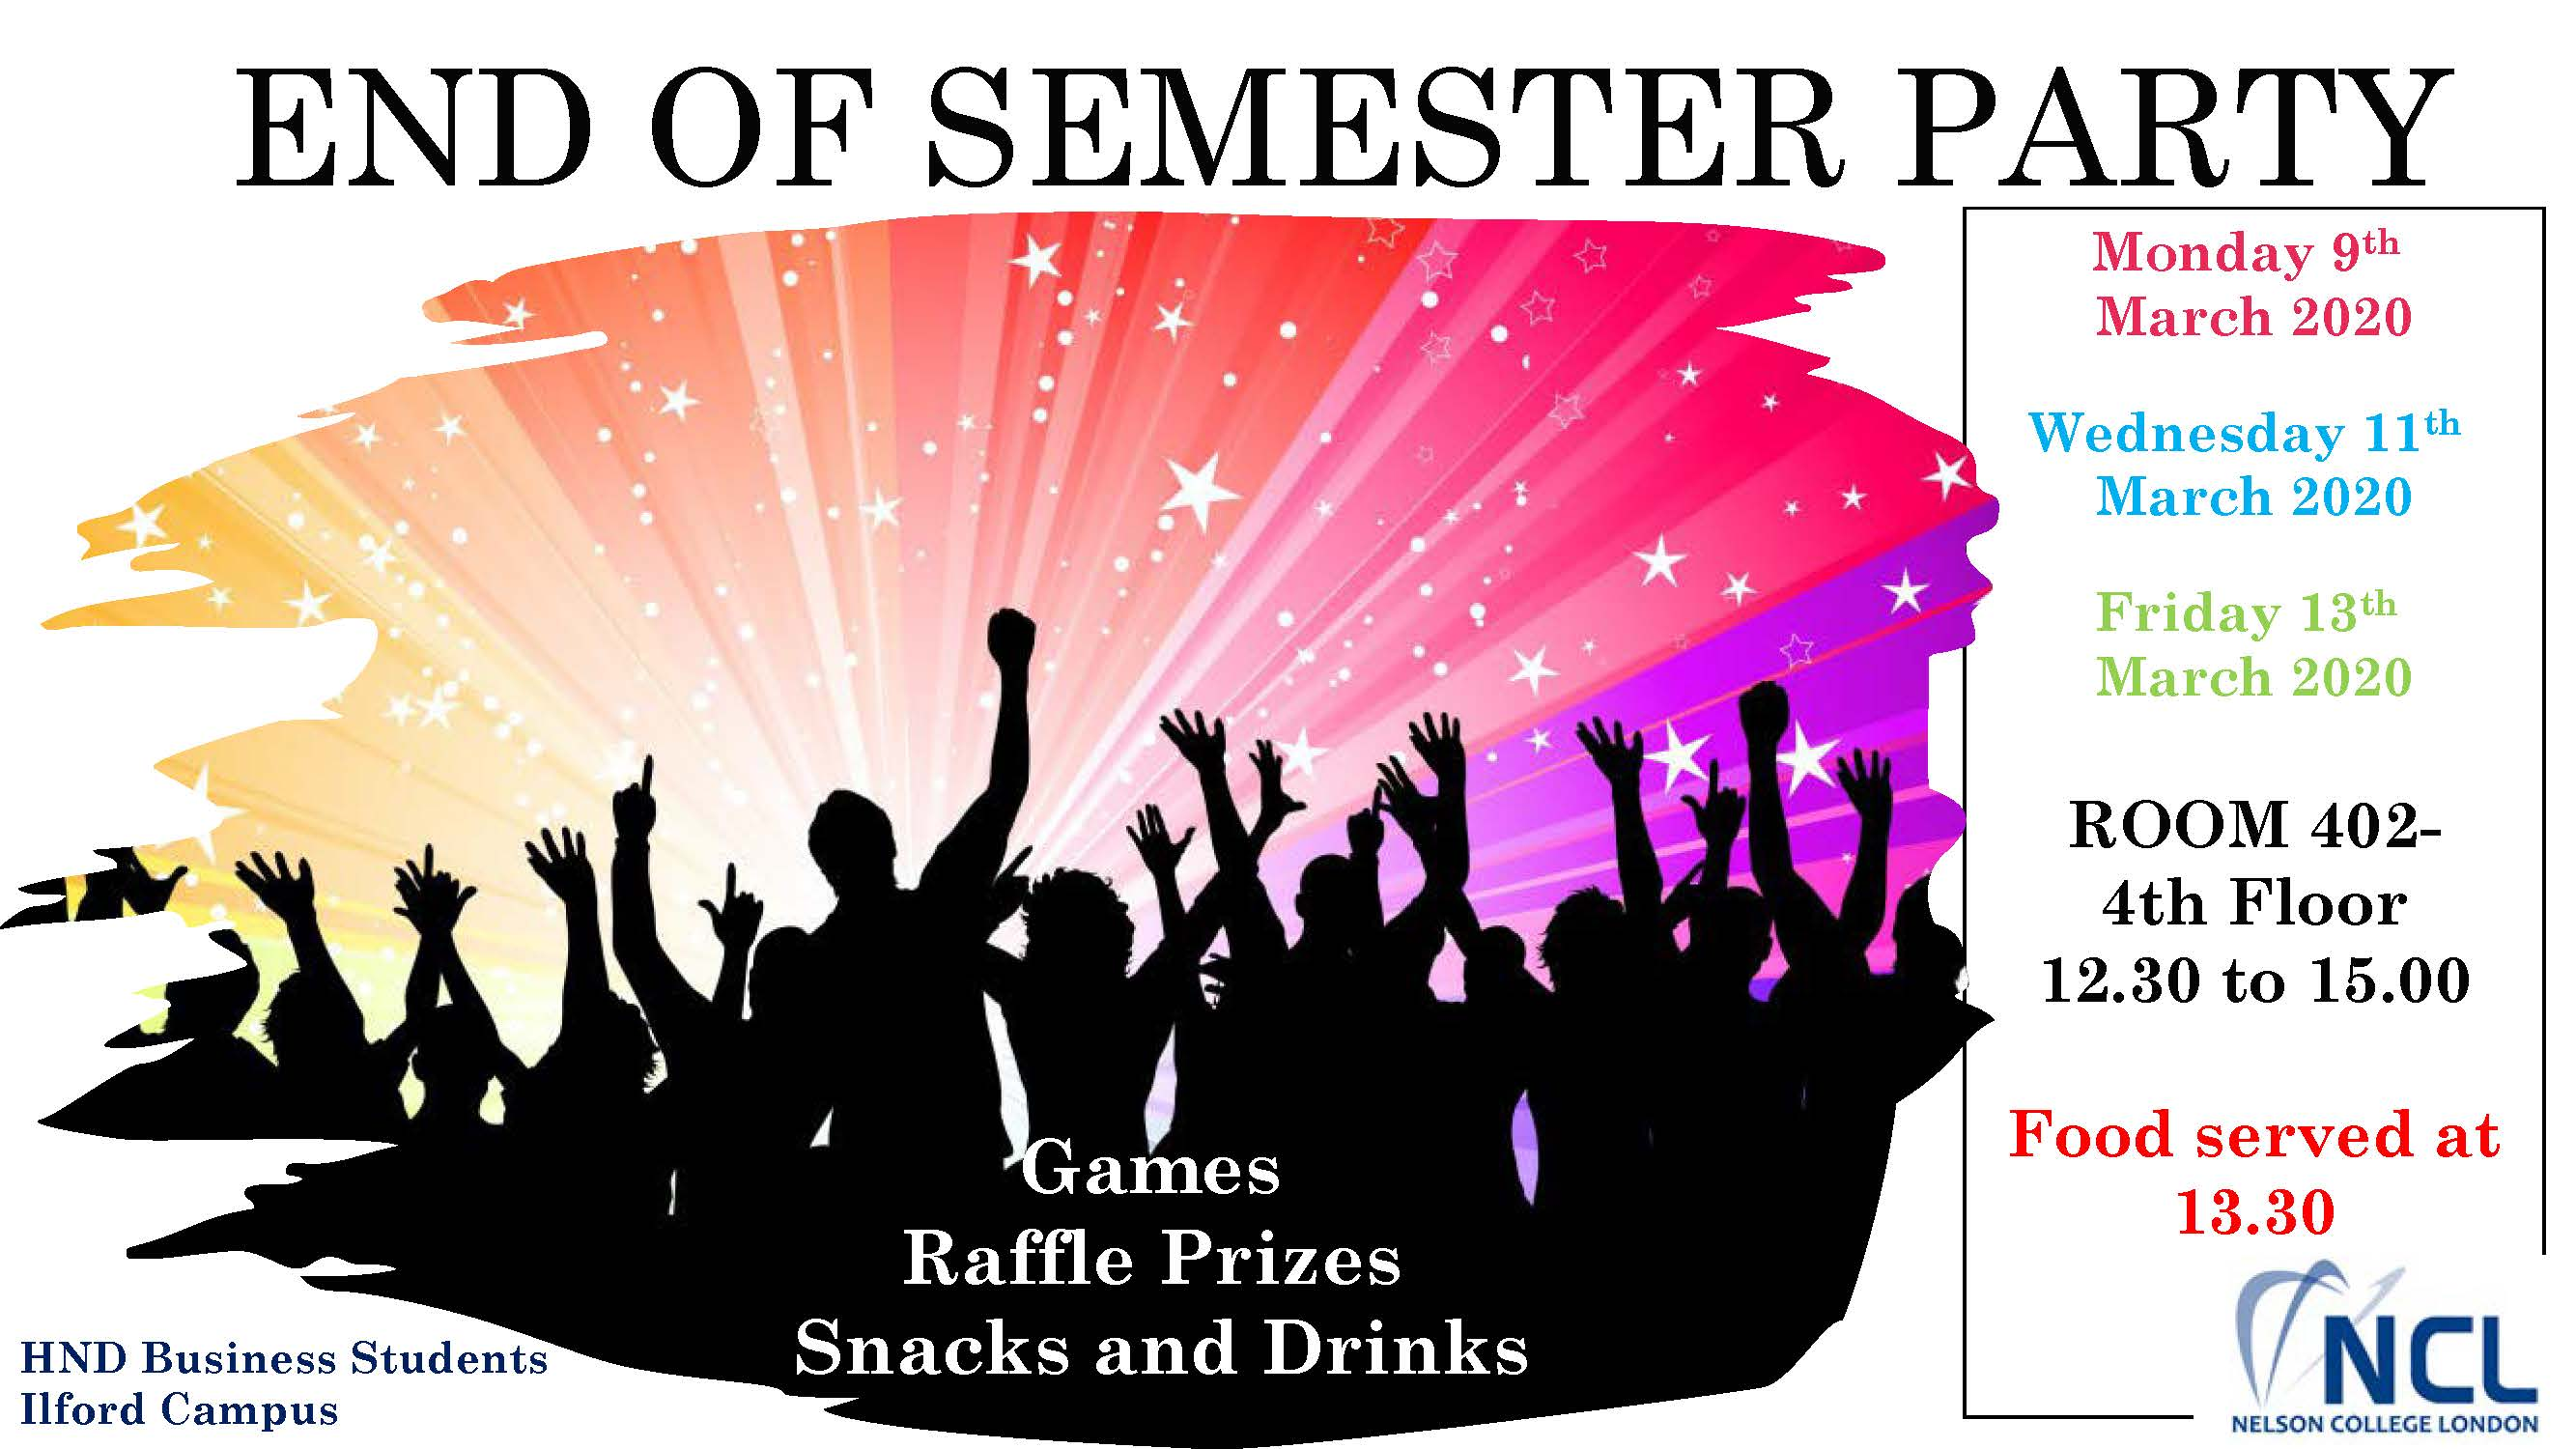 End of semester party on 9th, 11th and 13th of March. 12:30 - 3pm